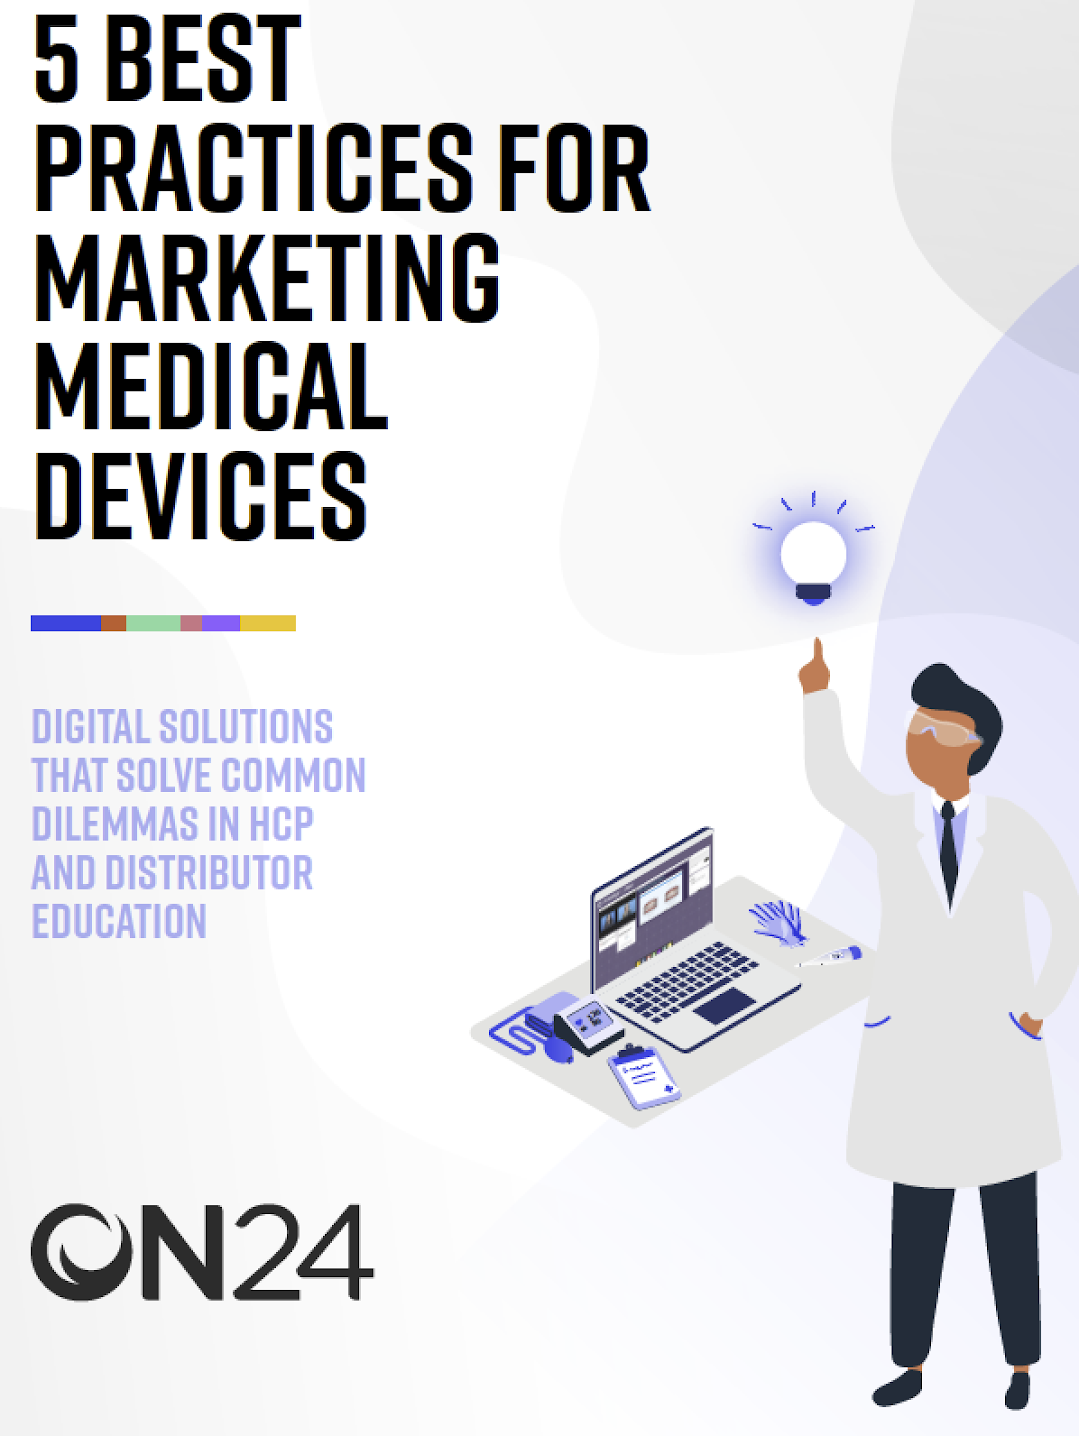 Dilemmas and Digital Experience Solutions for Marketing Medical Devices